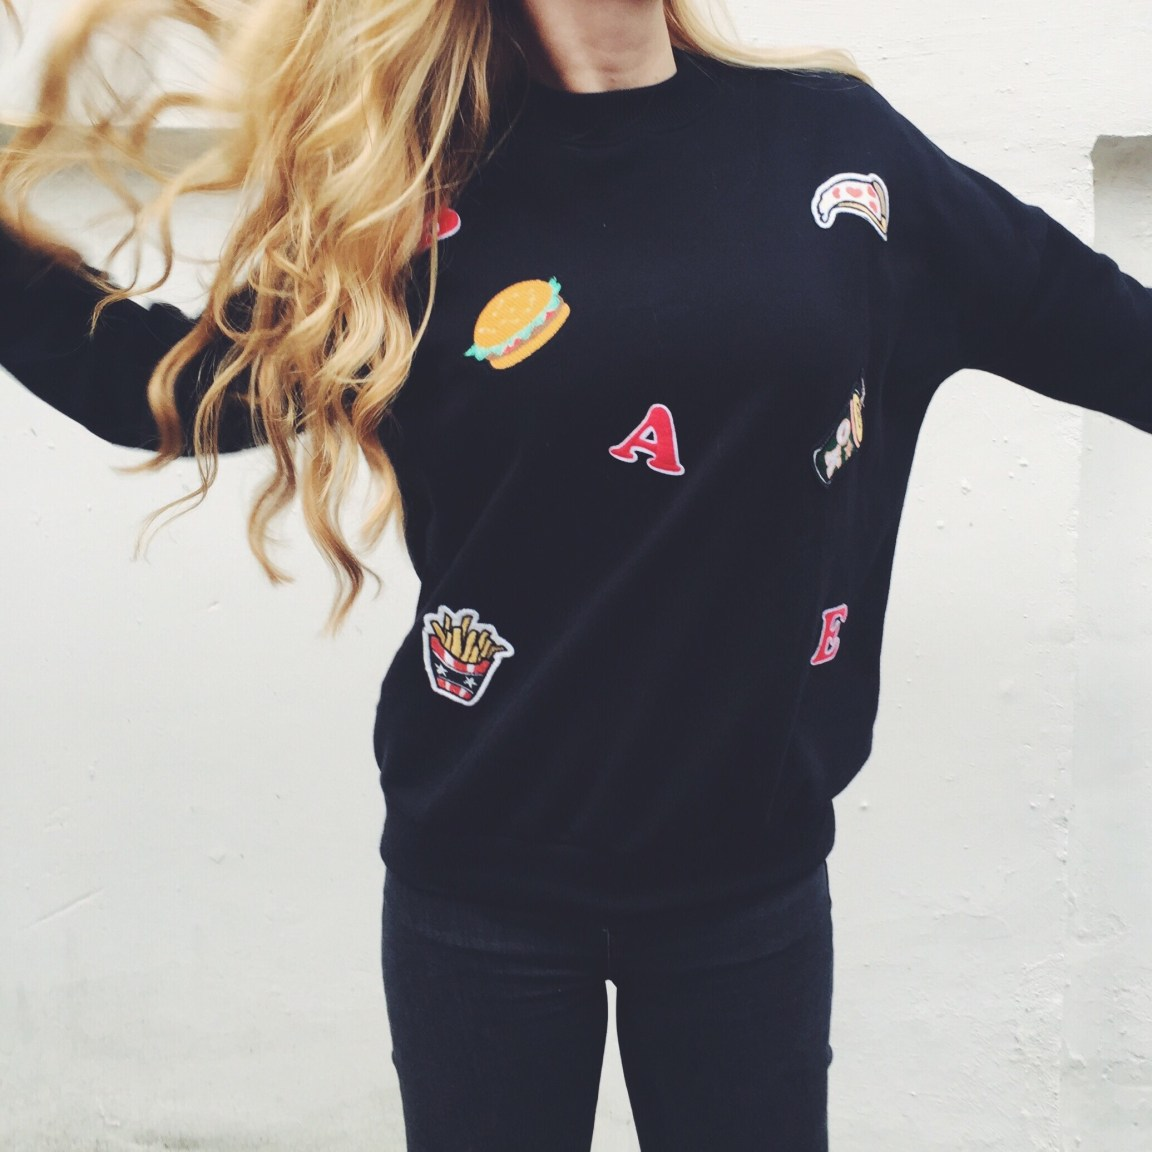 Hamburger & Pizza Sweater from Pull&Bear